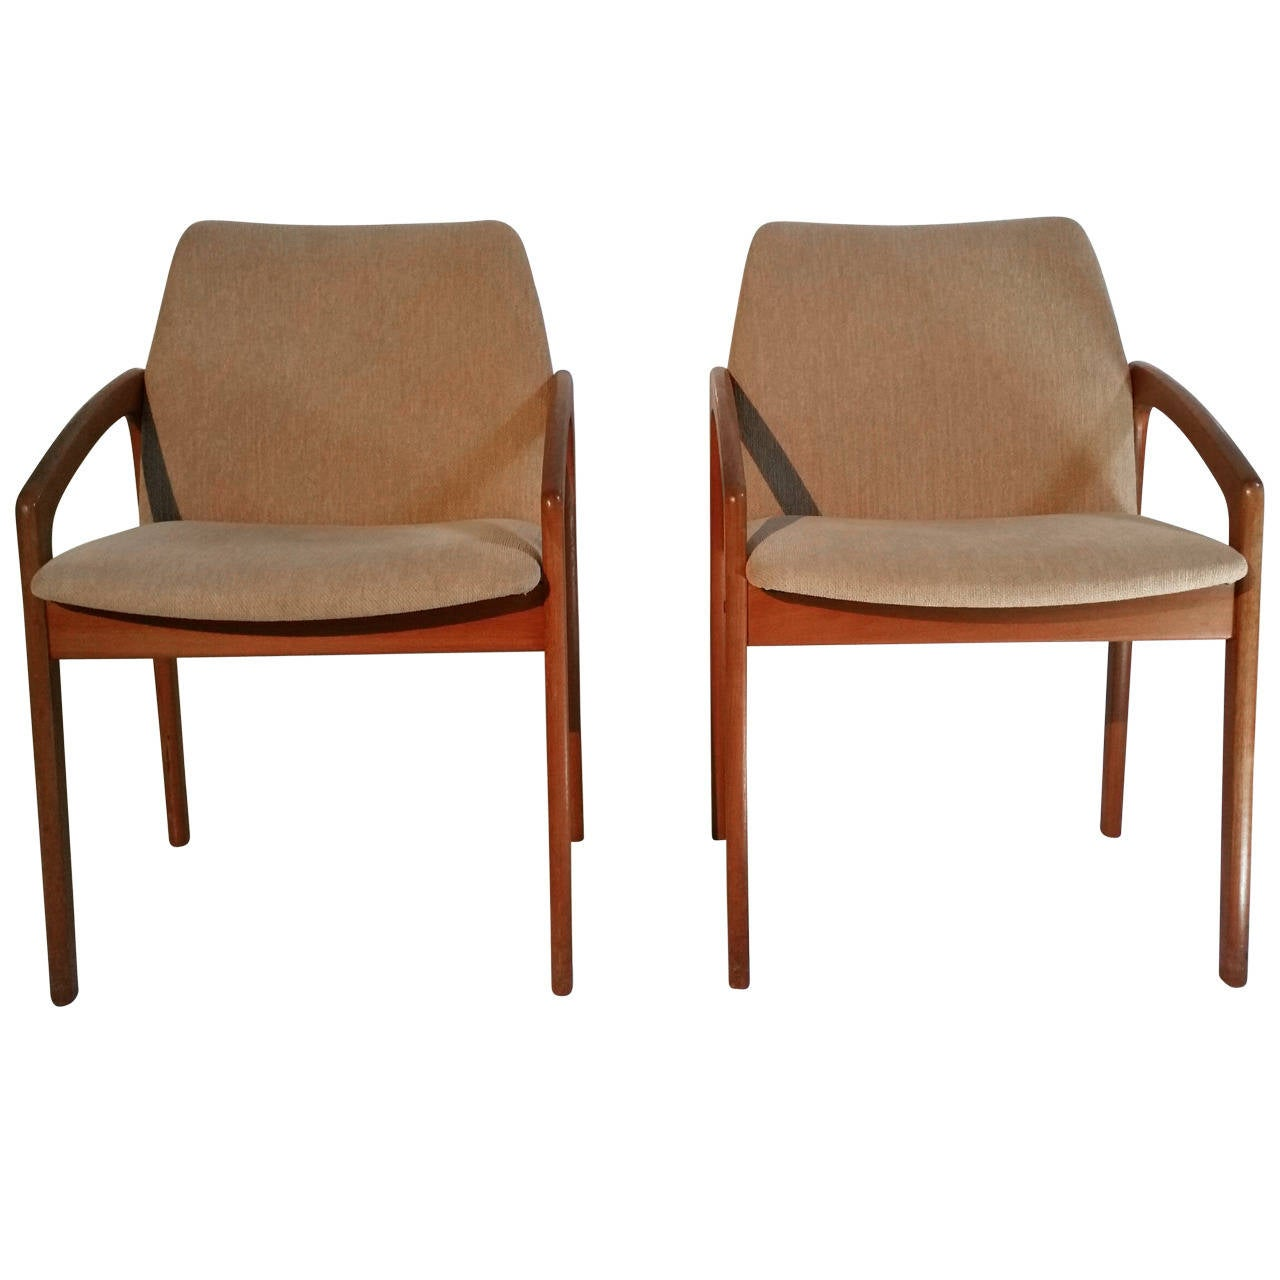 Pair of kai kristiansen teak chairs denmark at 1stdibs - Kai kristiansen chairs ...